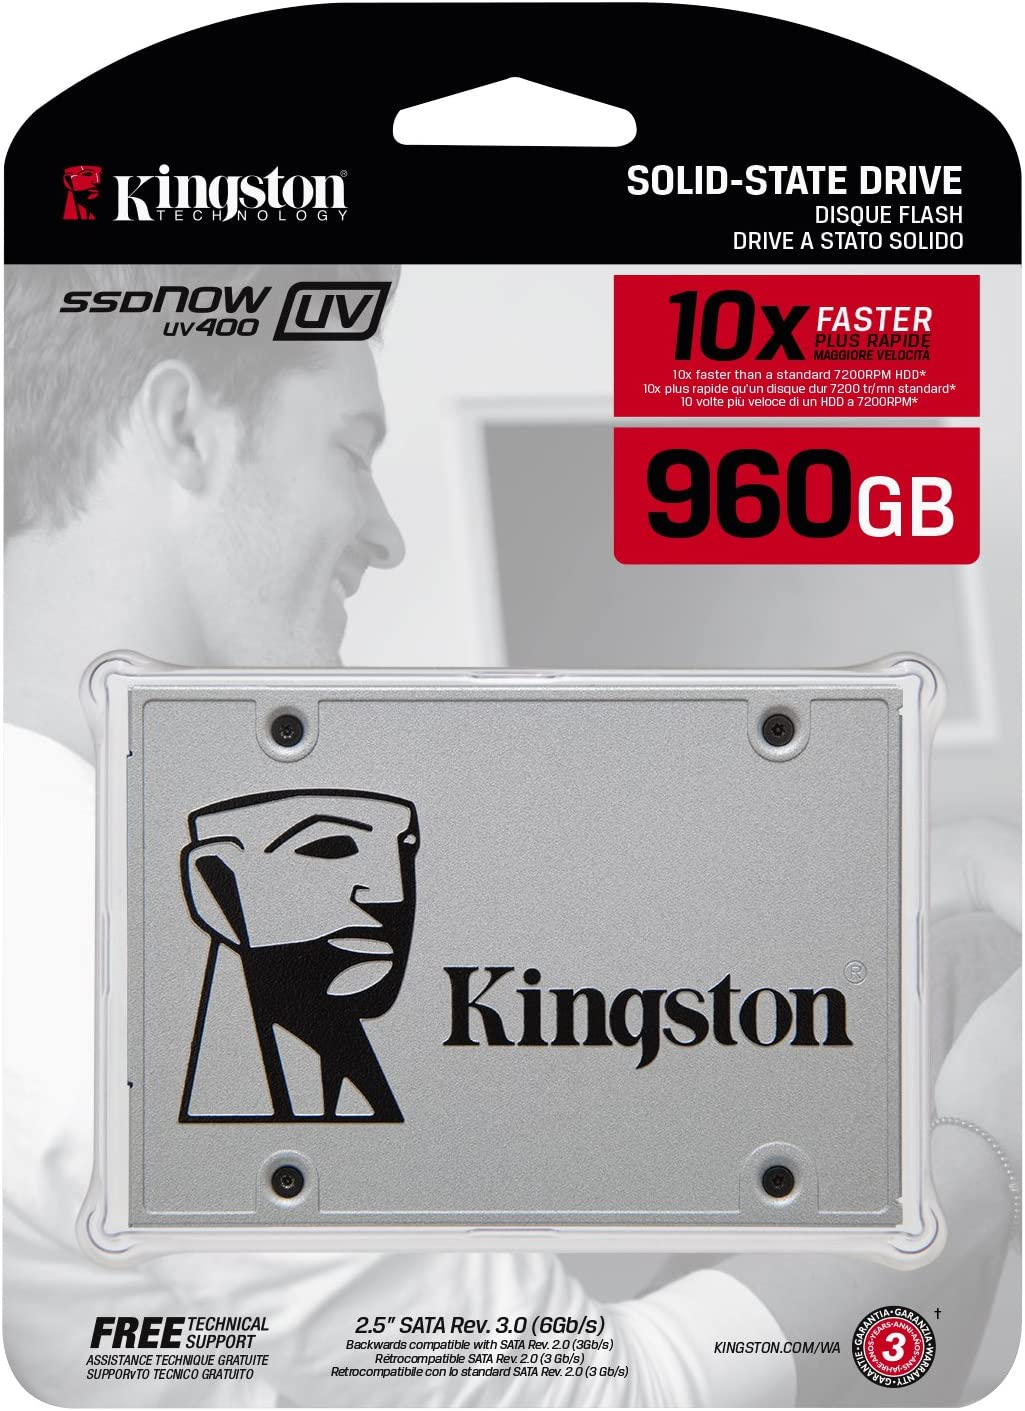 Kingston SSDNow UV400 - Disco Duro sólido de 960 GB (2.5